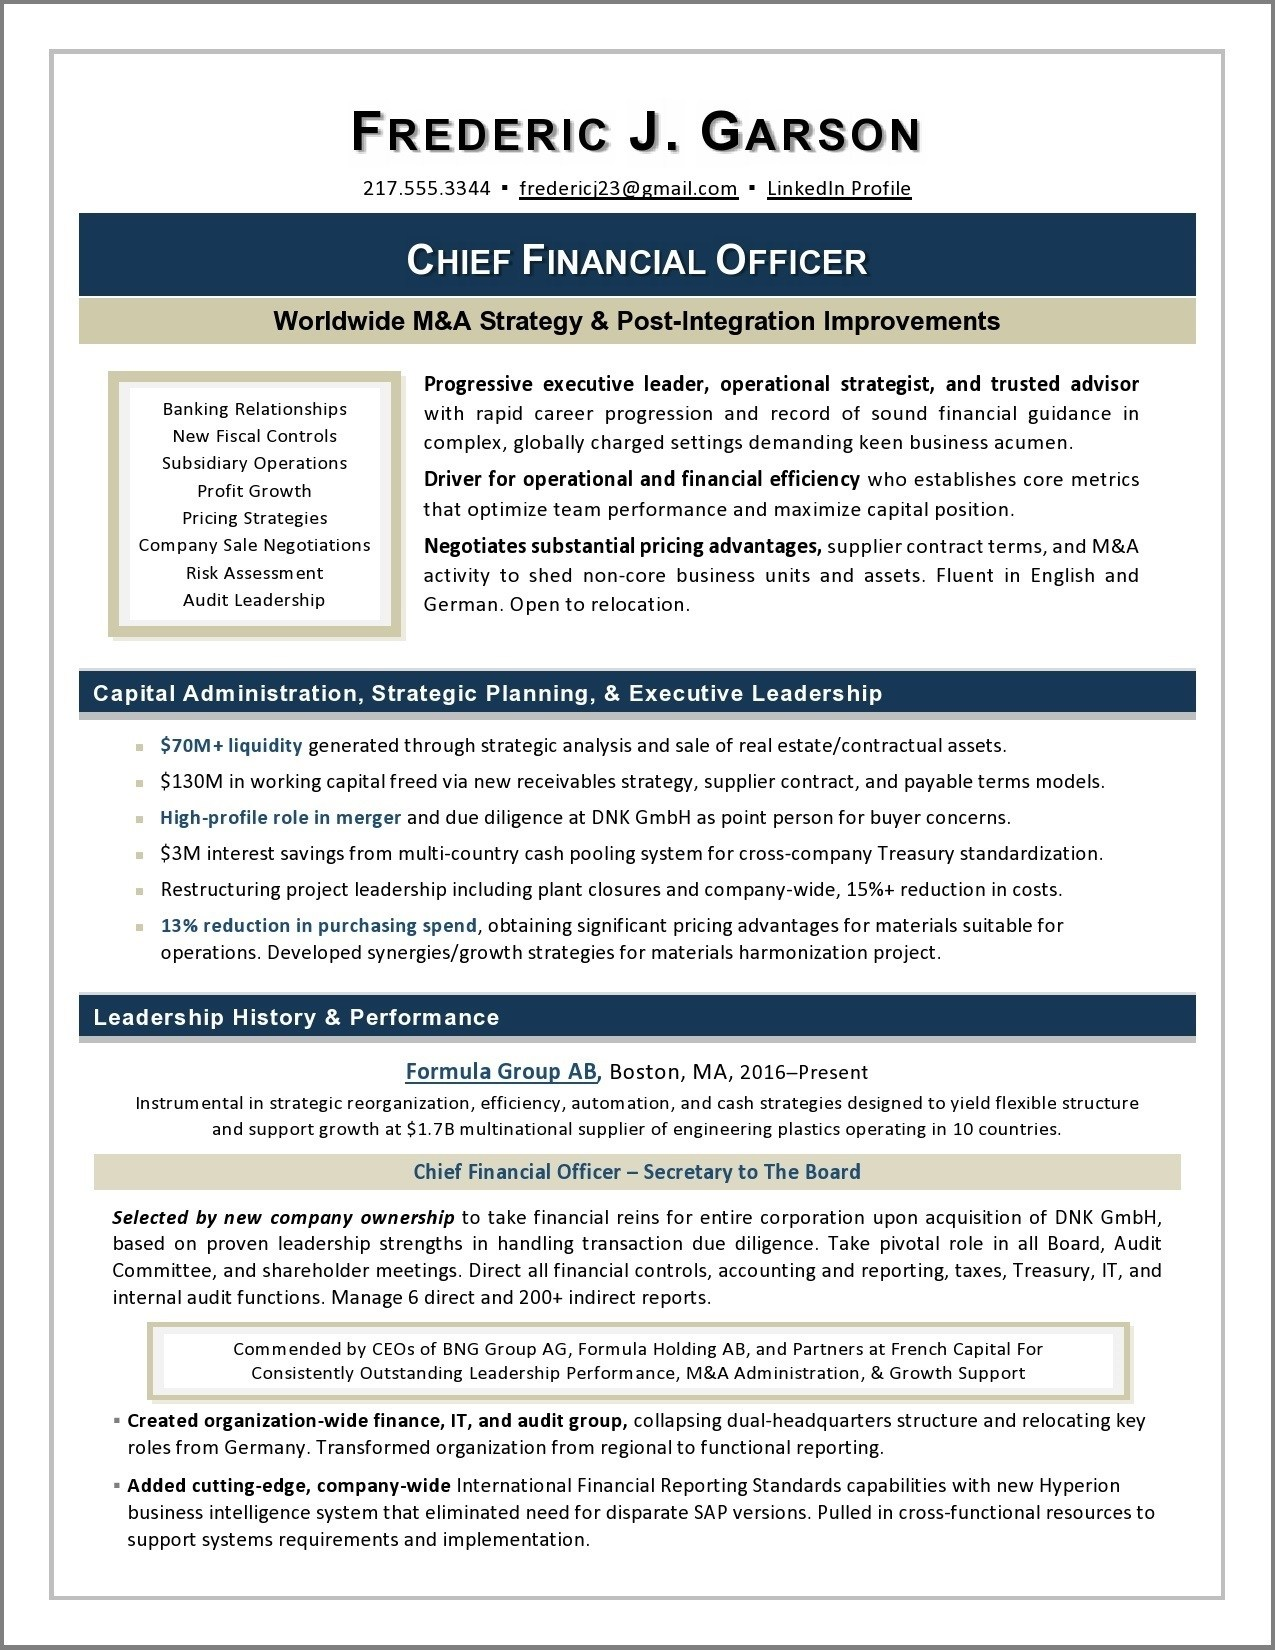 best executive resume writing services writers top writer global cfo by laura proulx Resume Top 10 Executive Resume Writers